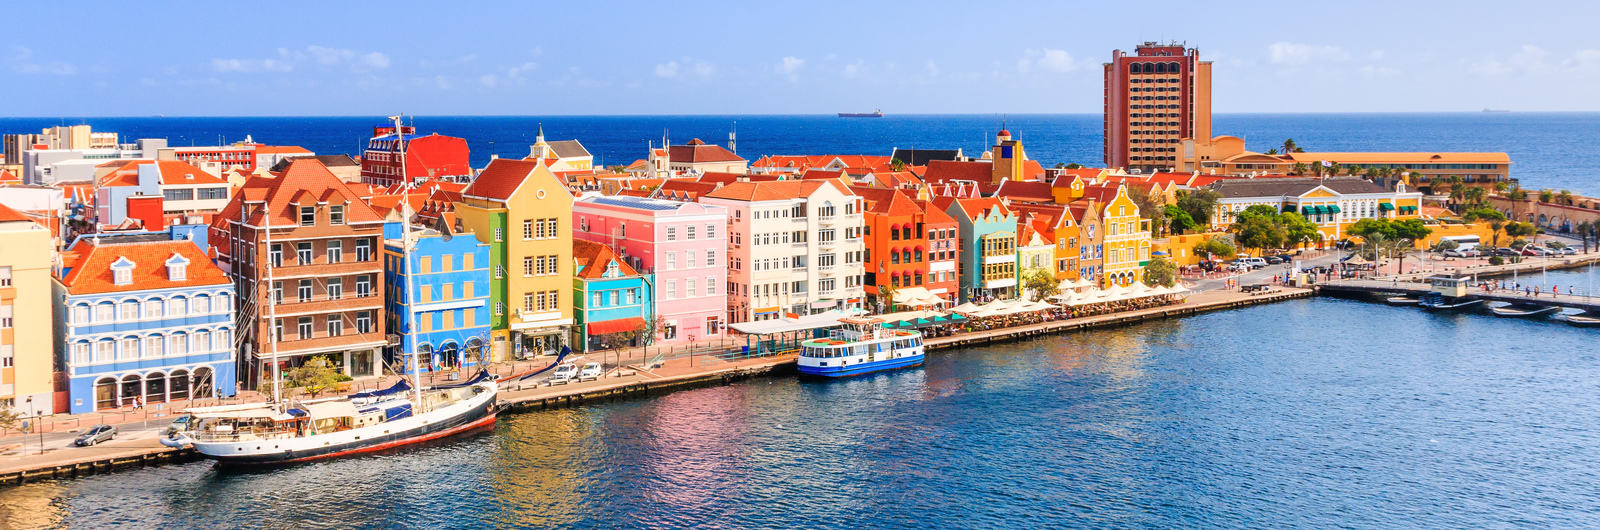 curacao city header